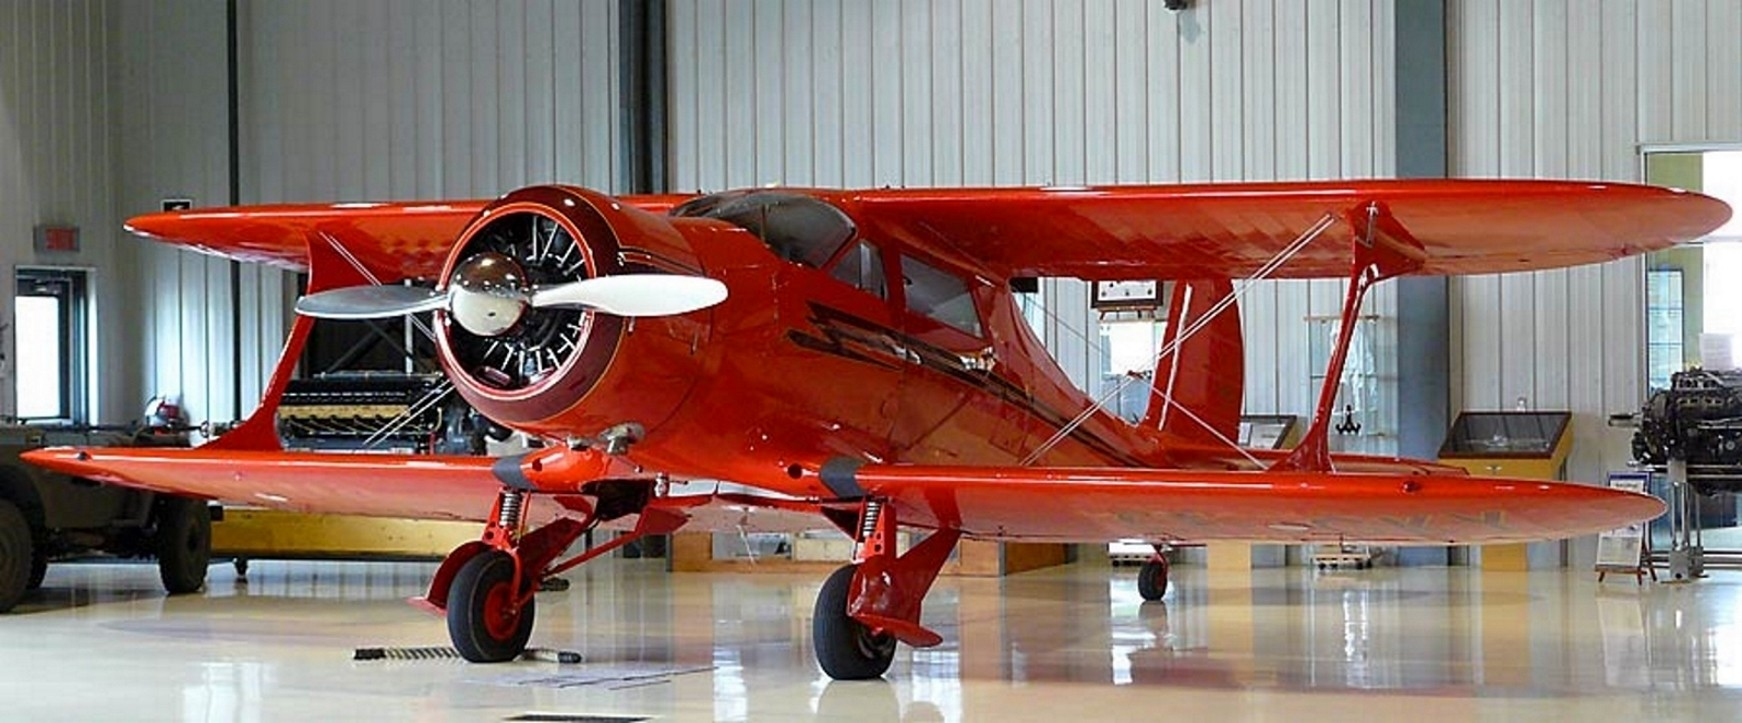 Beechcraft Model 17 Staggerwing - Chodiť